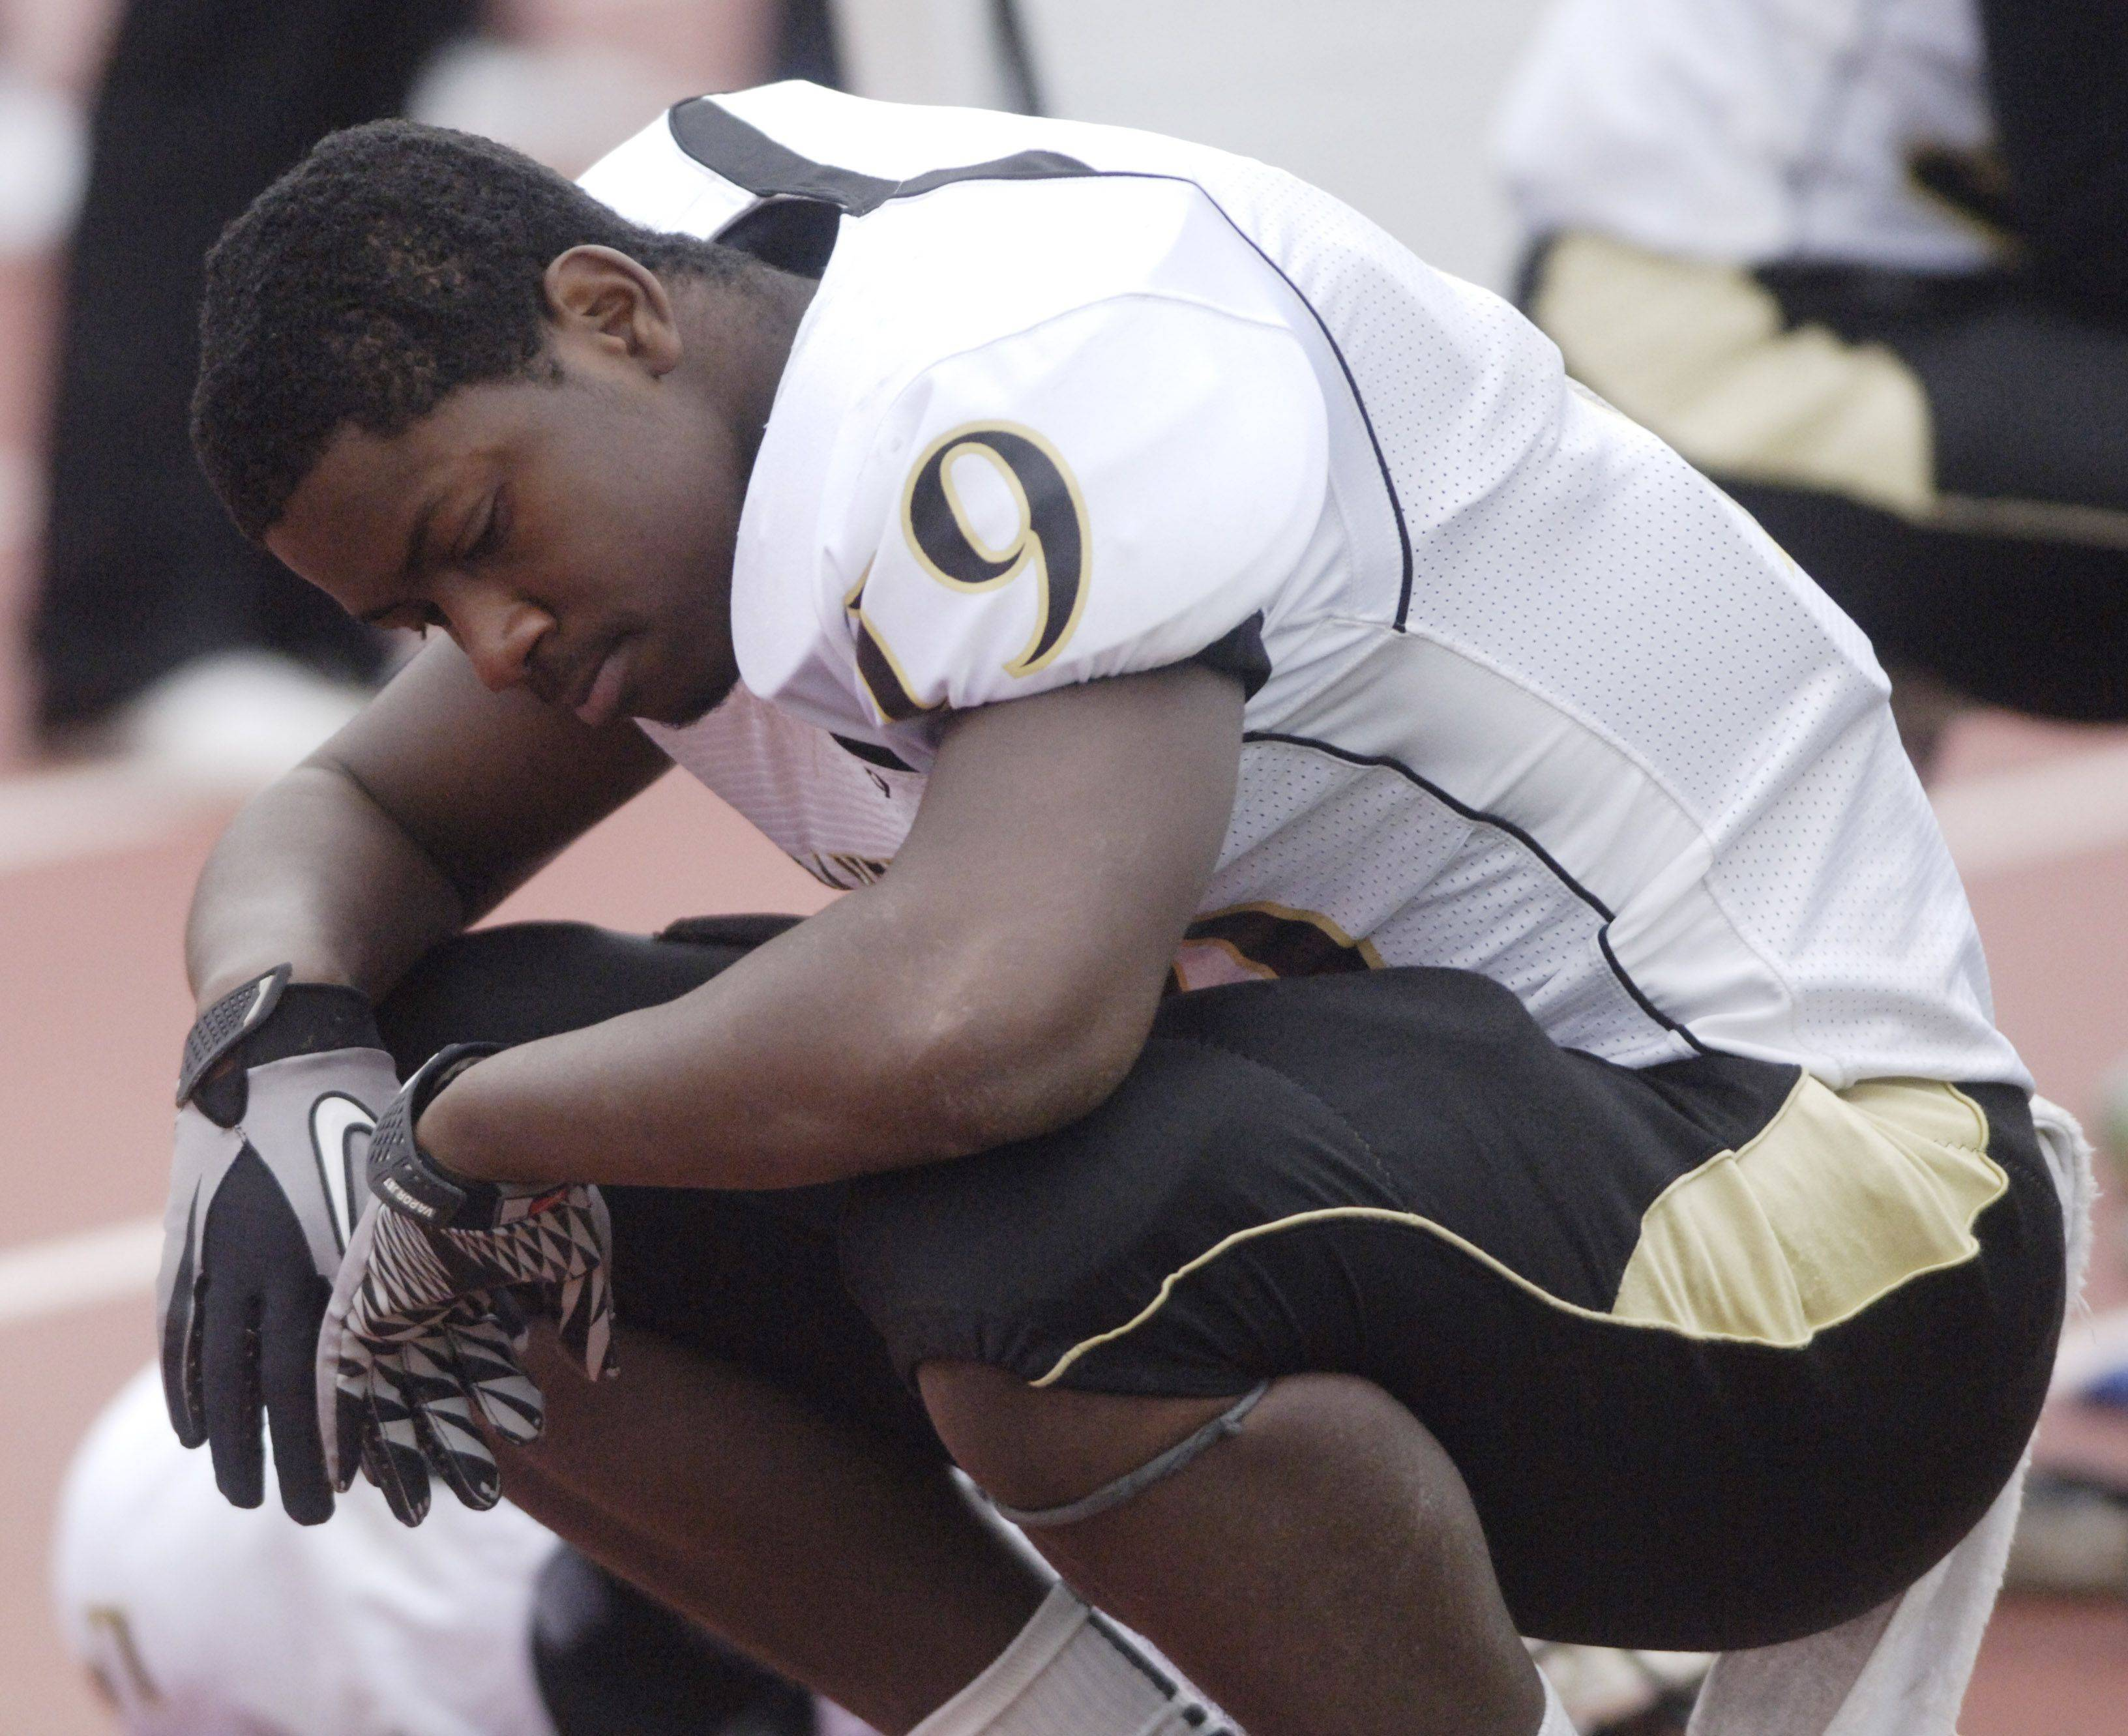 Glenbard North's Marquis Hollins pauses on the sideline during the closing minutes of the fourth quarter during Saturday's loss to Loyola Academy.